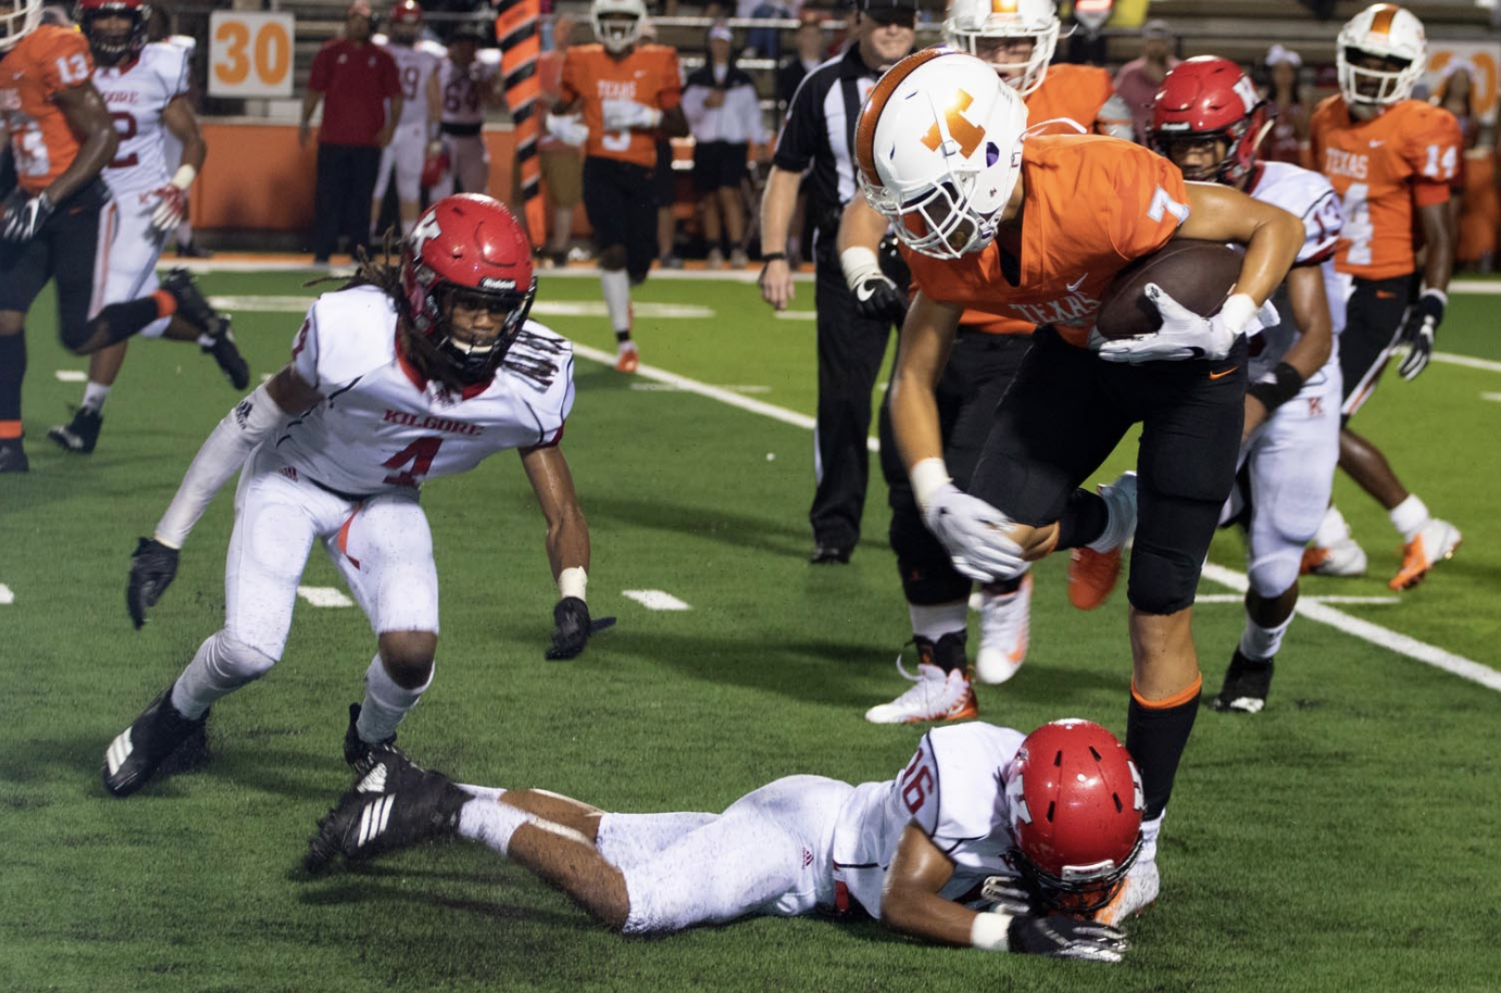 Senior wide receiver Myles Washington attempts to break away from a Kilgore defender. The Tigers play the John Tyler Lions tonight at Tiger Stadium at 7 p.m.